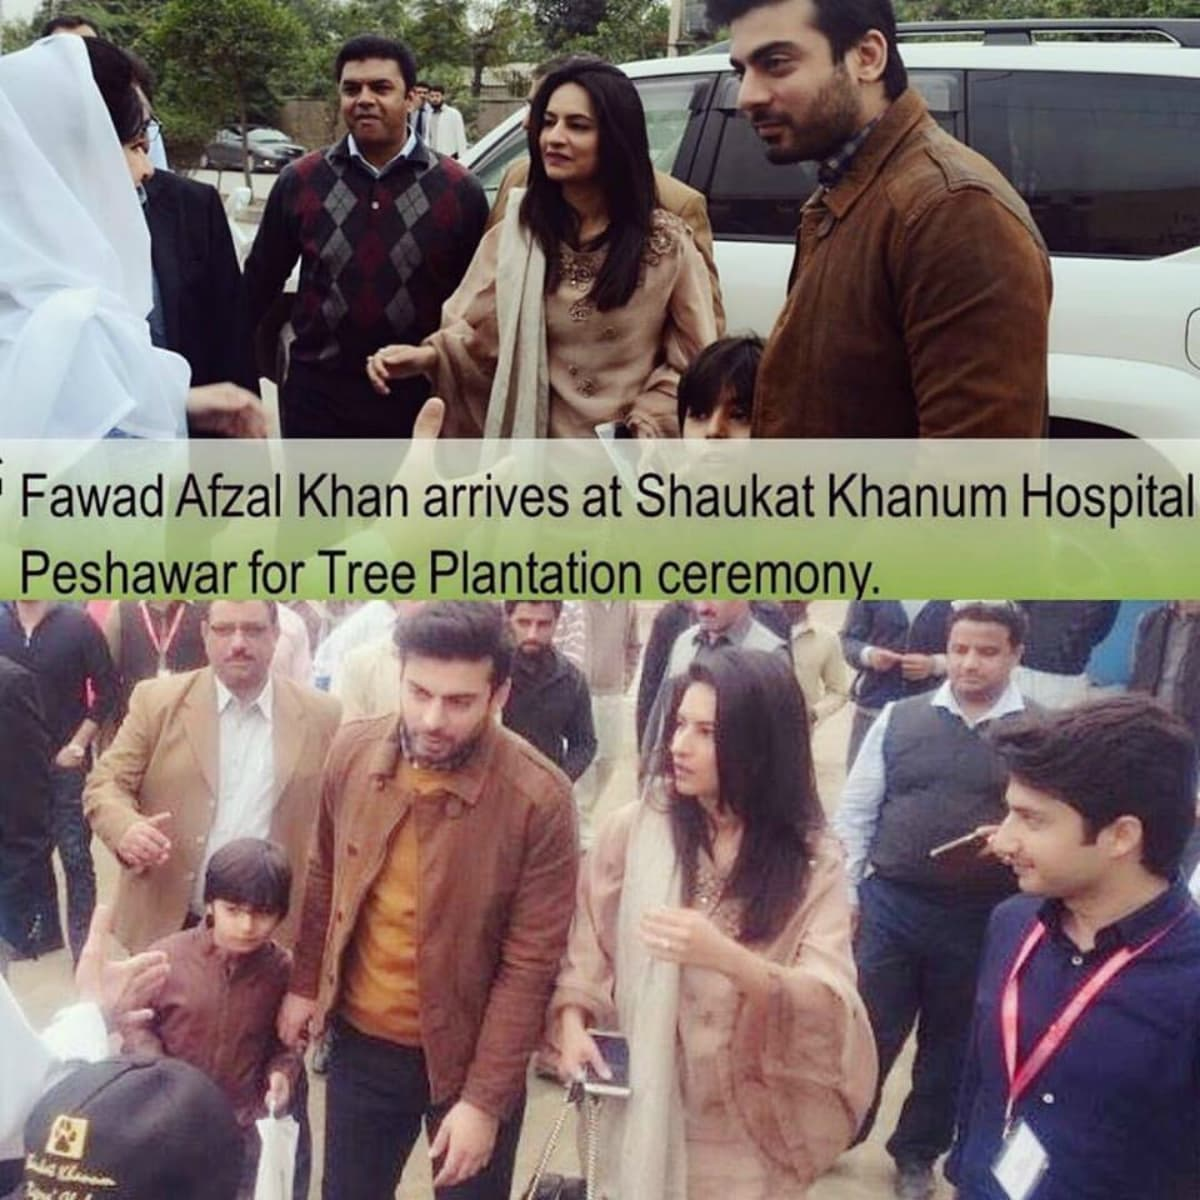 Fawad visited Peshawar with his wife Sadaf in support of Imran Khan's tree plantation drive, Billion Tree Tsunami – Photo courtesy: Shaukat Khanum Memorial Cancer Hospital and Research Centre's page